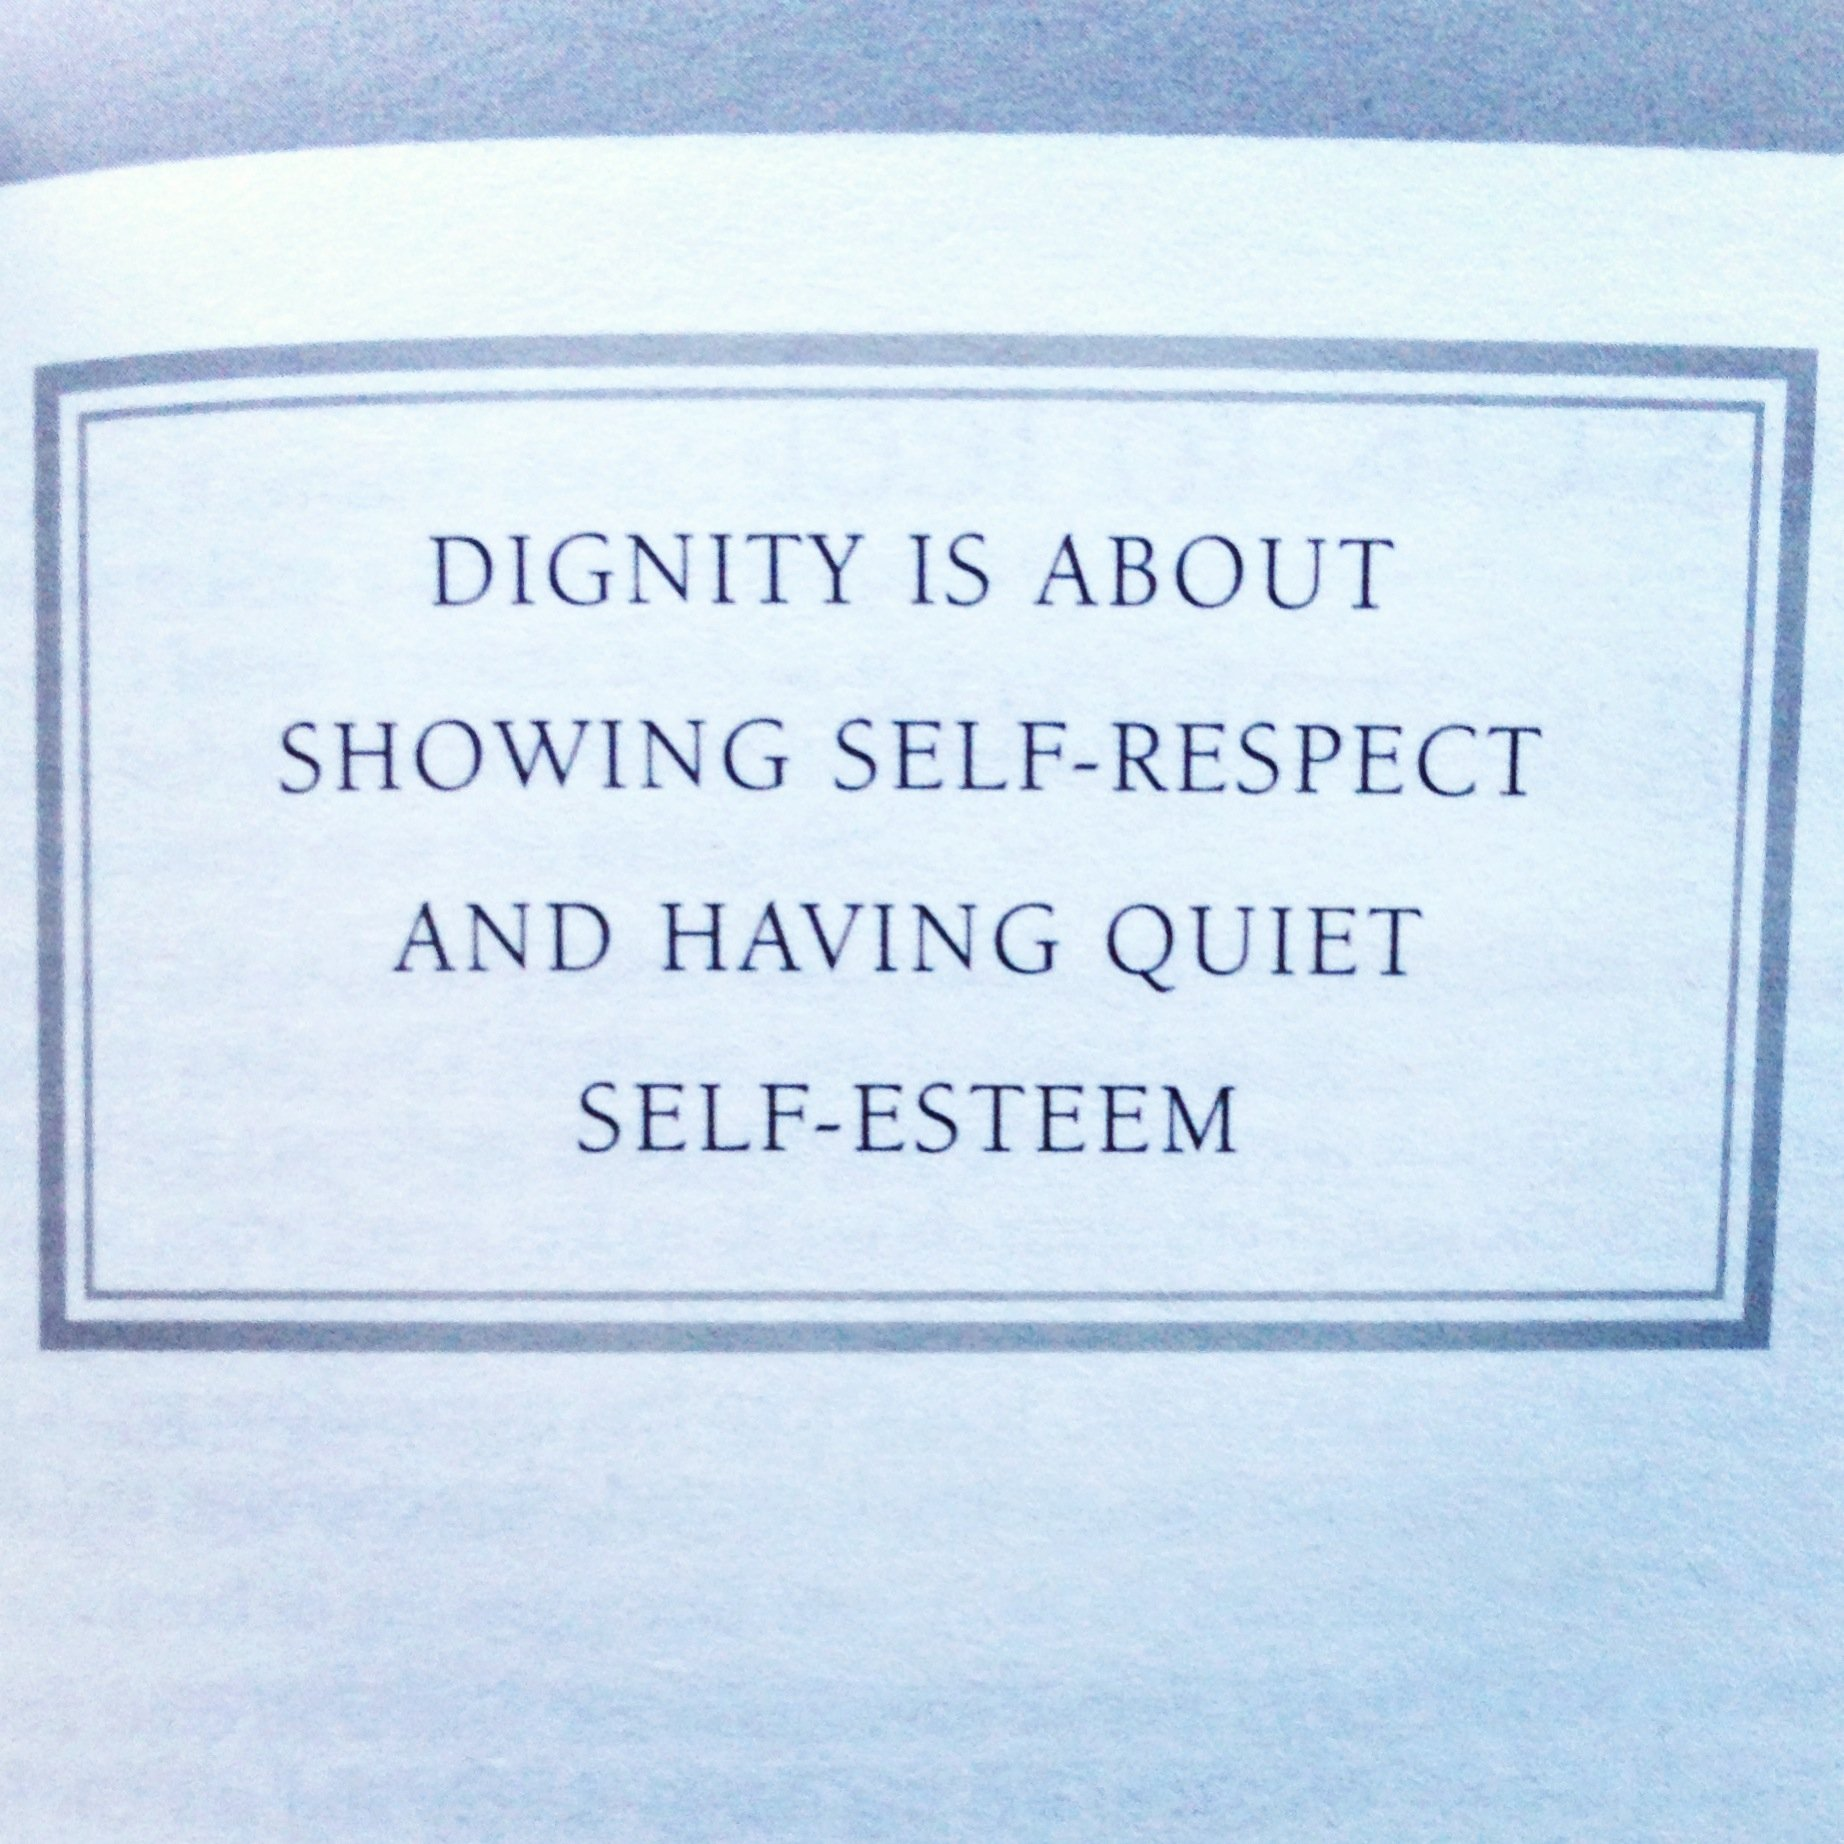 Dignity Quotes And Sayings: Self Respect And Dignity Quotes. QuotesGram